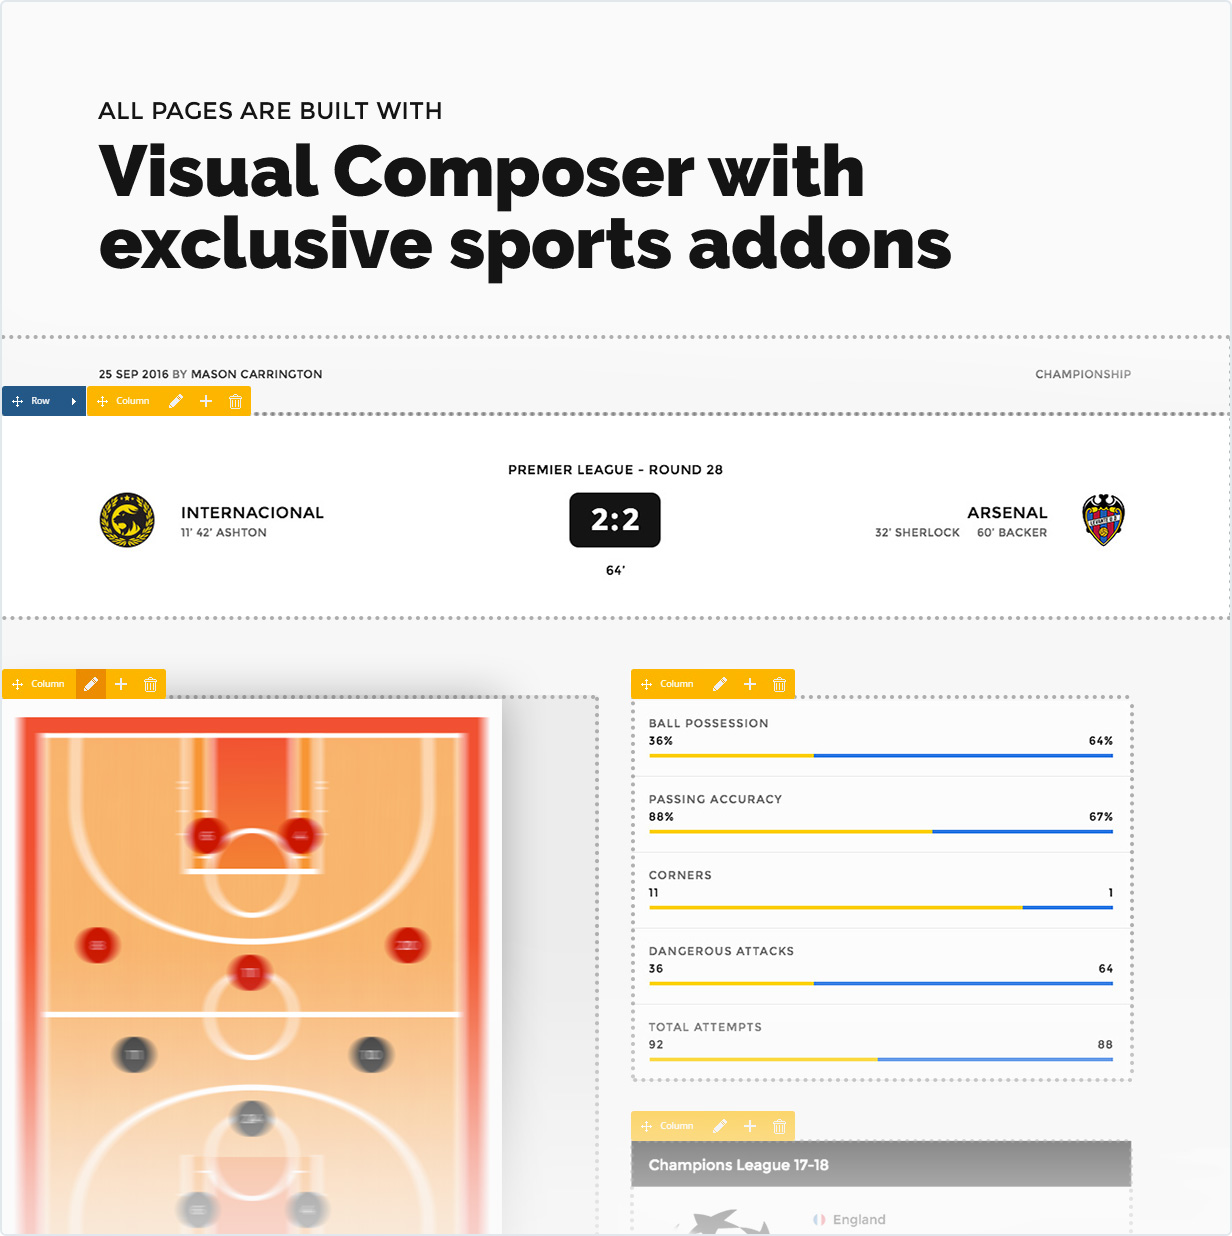 Visual Composer with exclusive sports addons